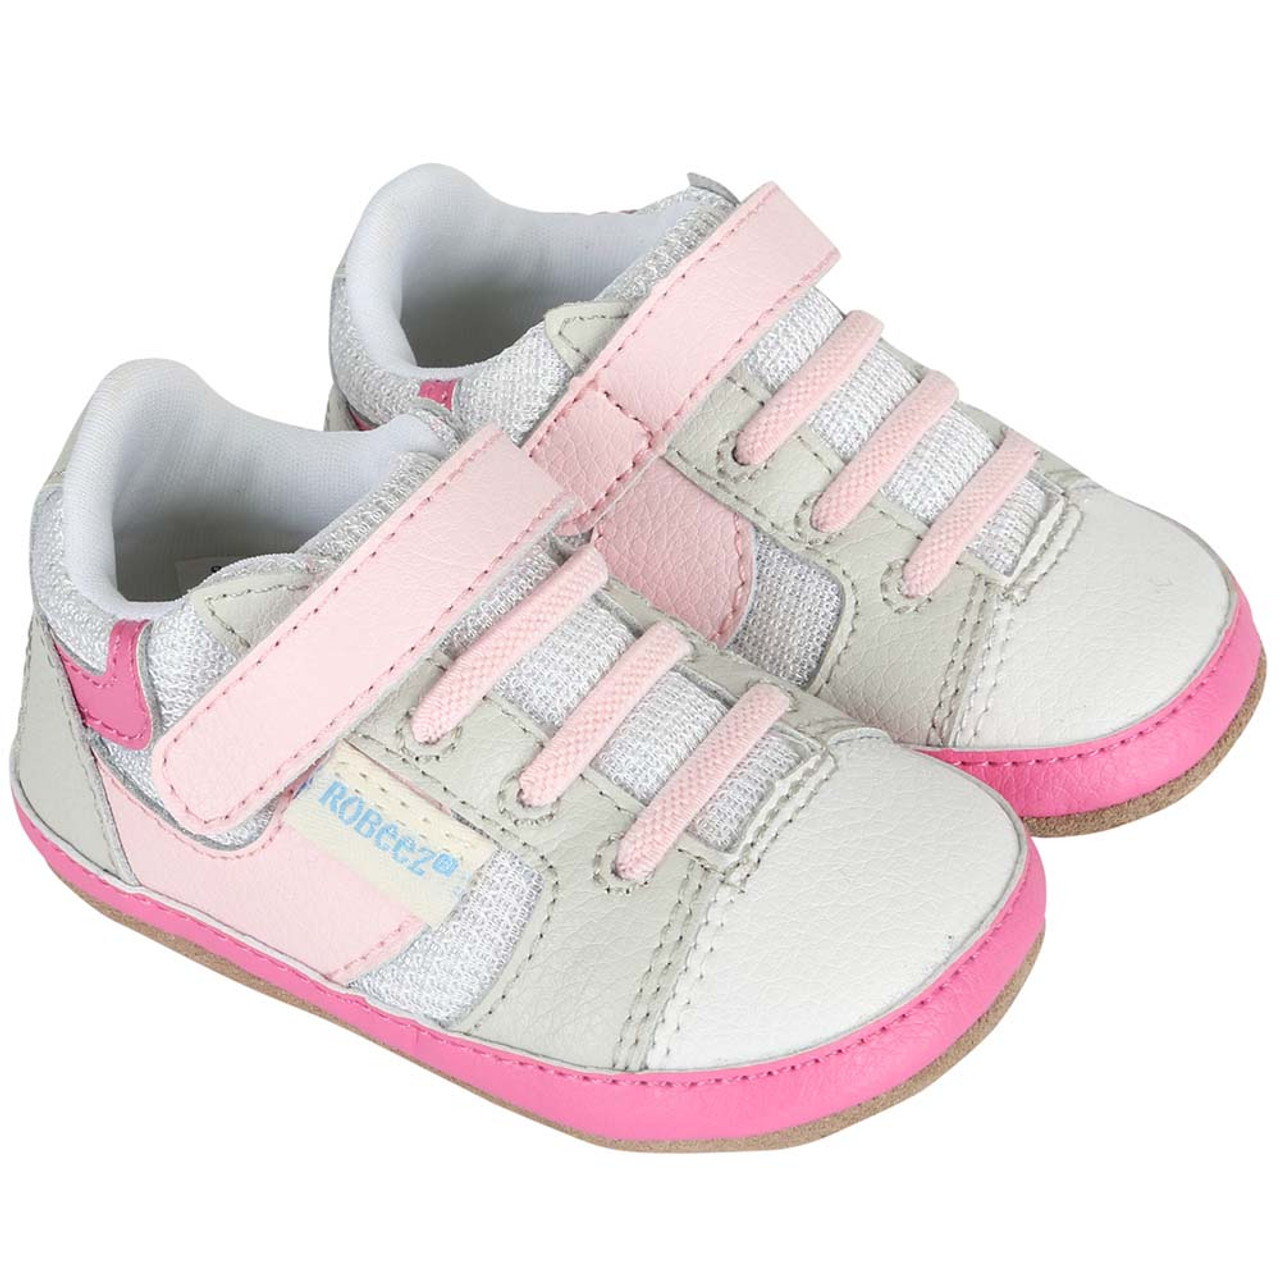 Baby Shoes Tori Tenny Mini Shoez Girls Ages 0 24 Months Robeez